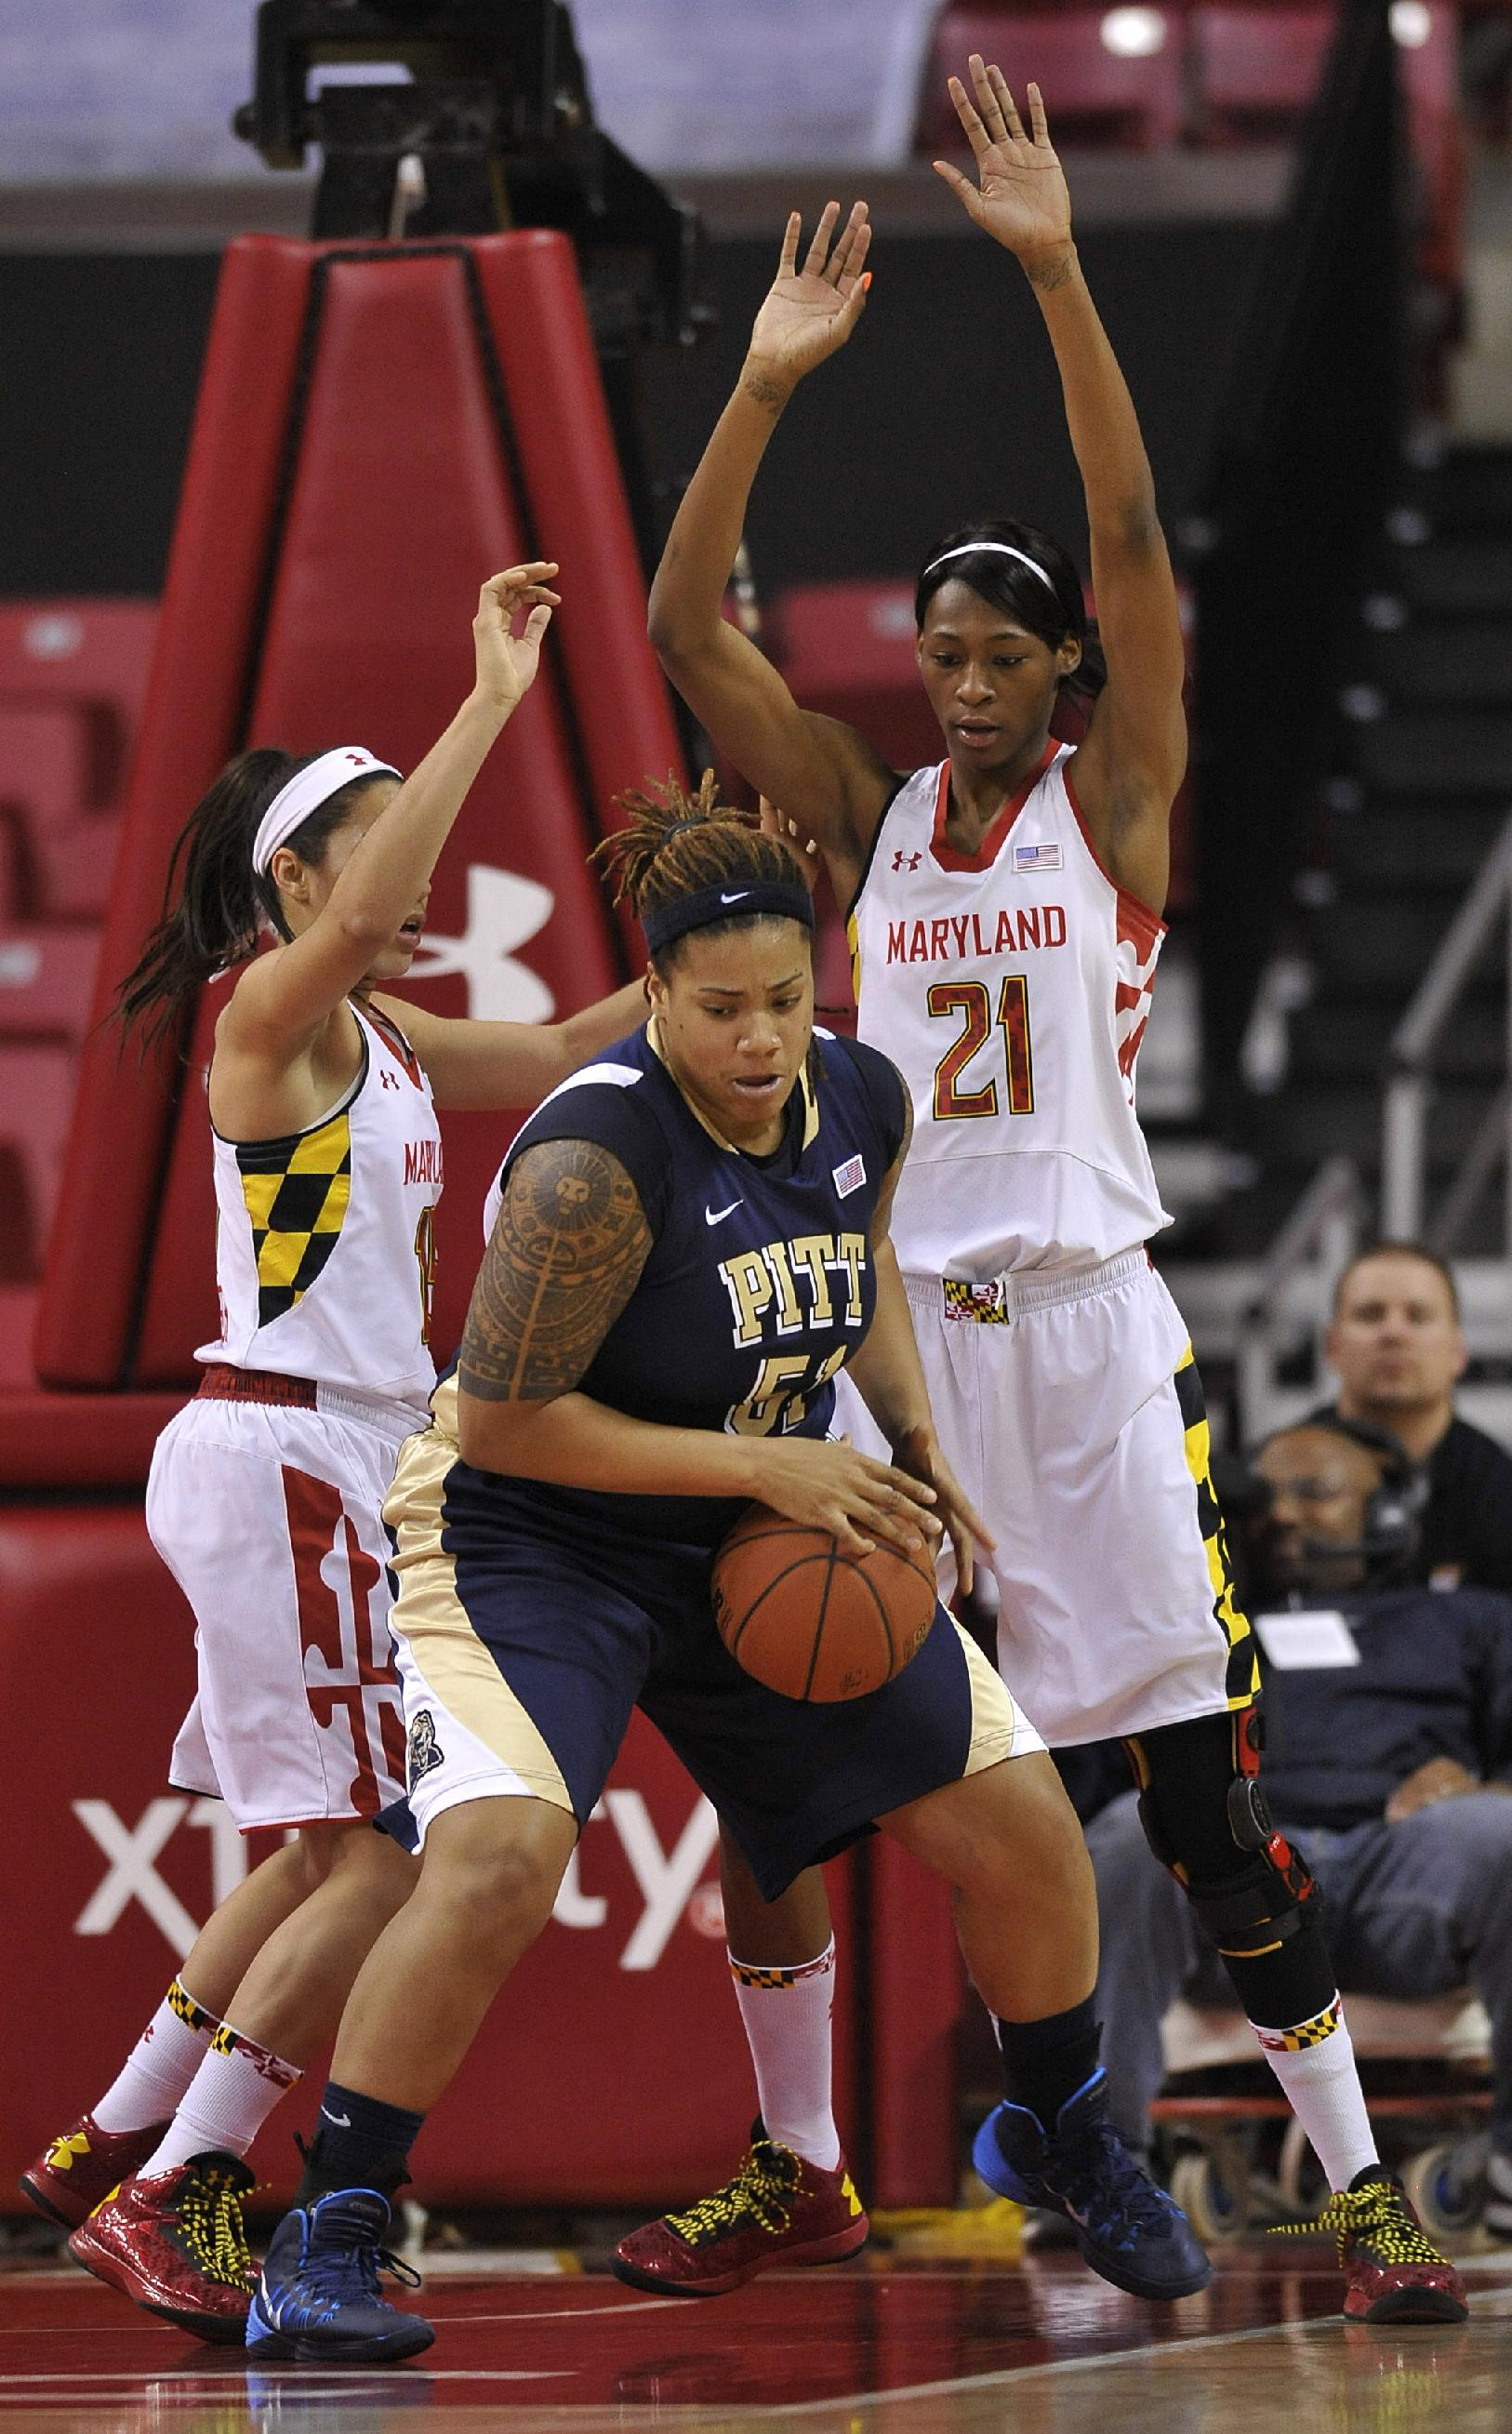 Pittsburgh's Cora McManus (51) is double-teamed by Maryland center Essence Townsend (21) and guard Chloe Pavlech (15) during the second half of an NCAA college basketball game Thursday, Feb. 6, 2014, in College Park, Md. Maryland won 94-46